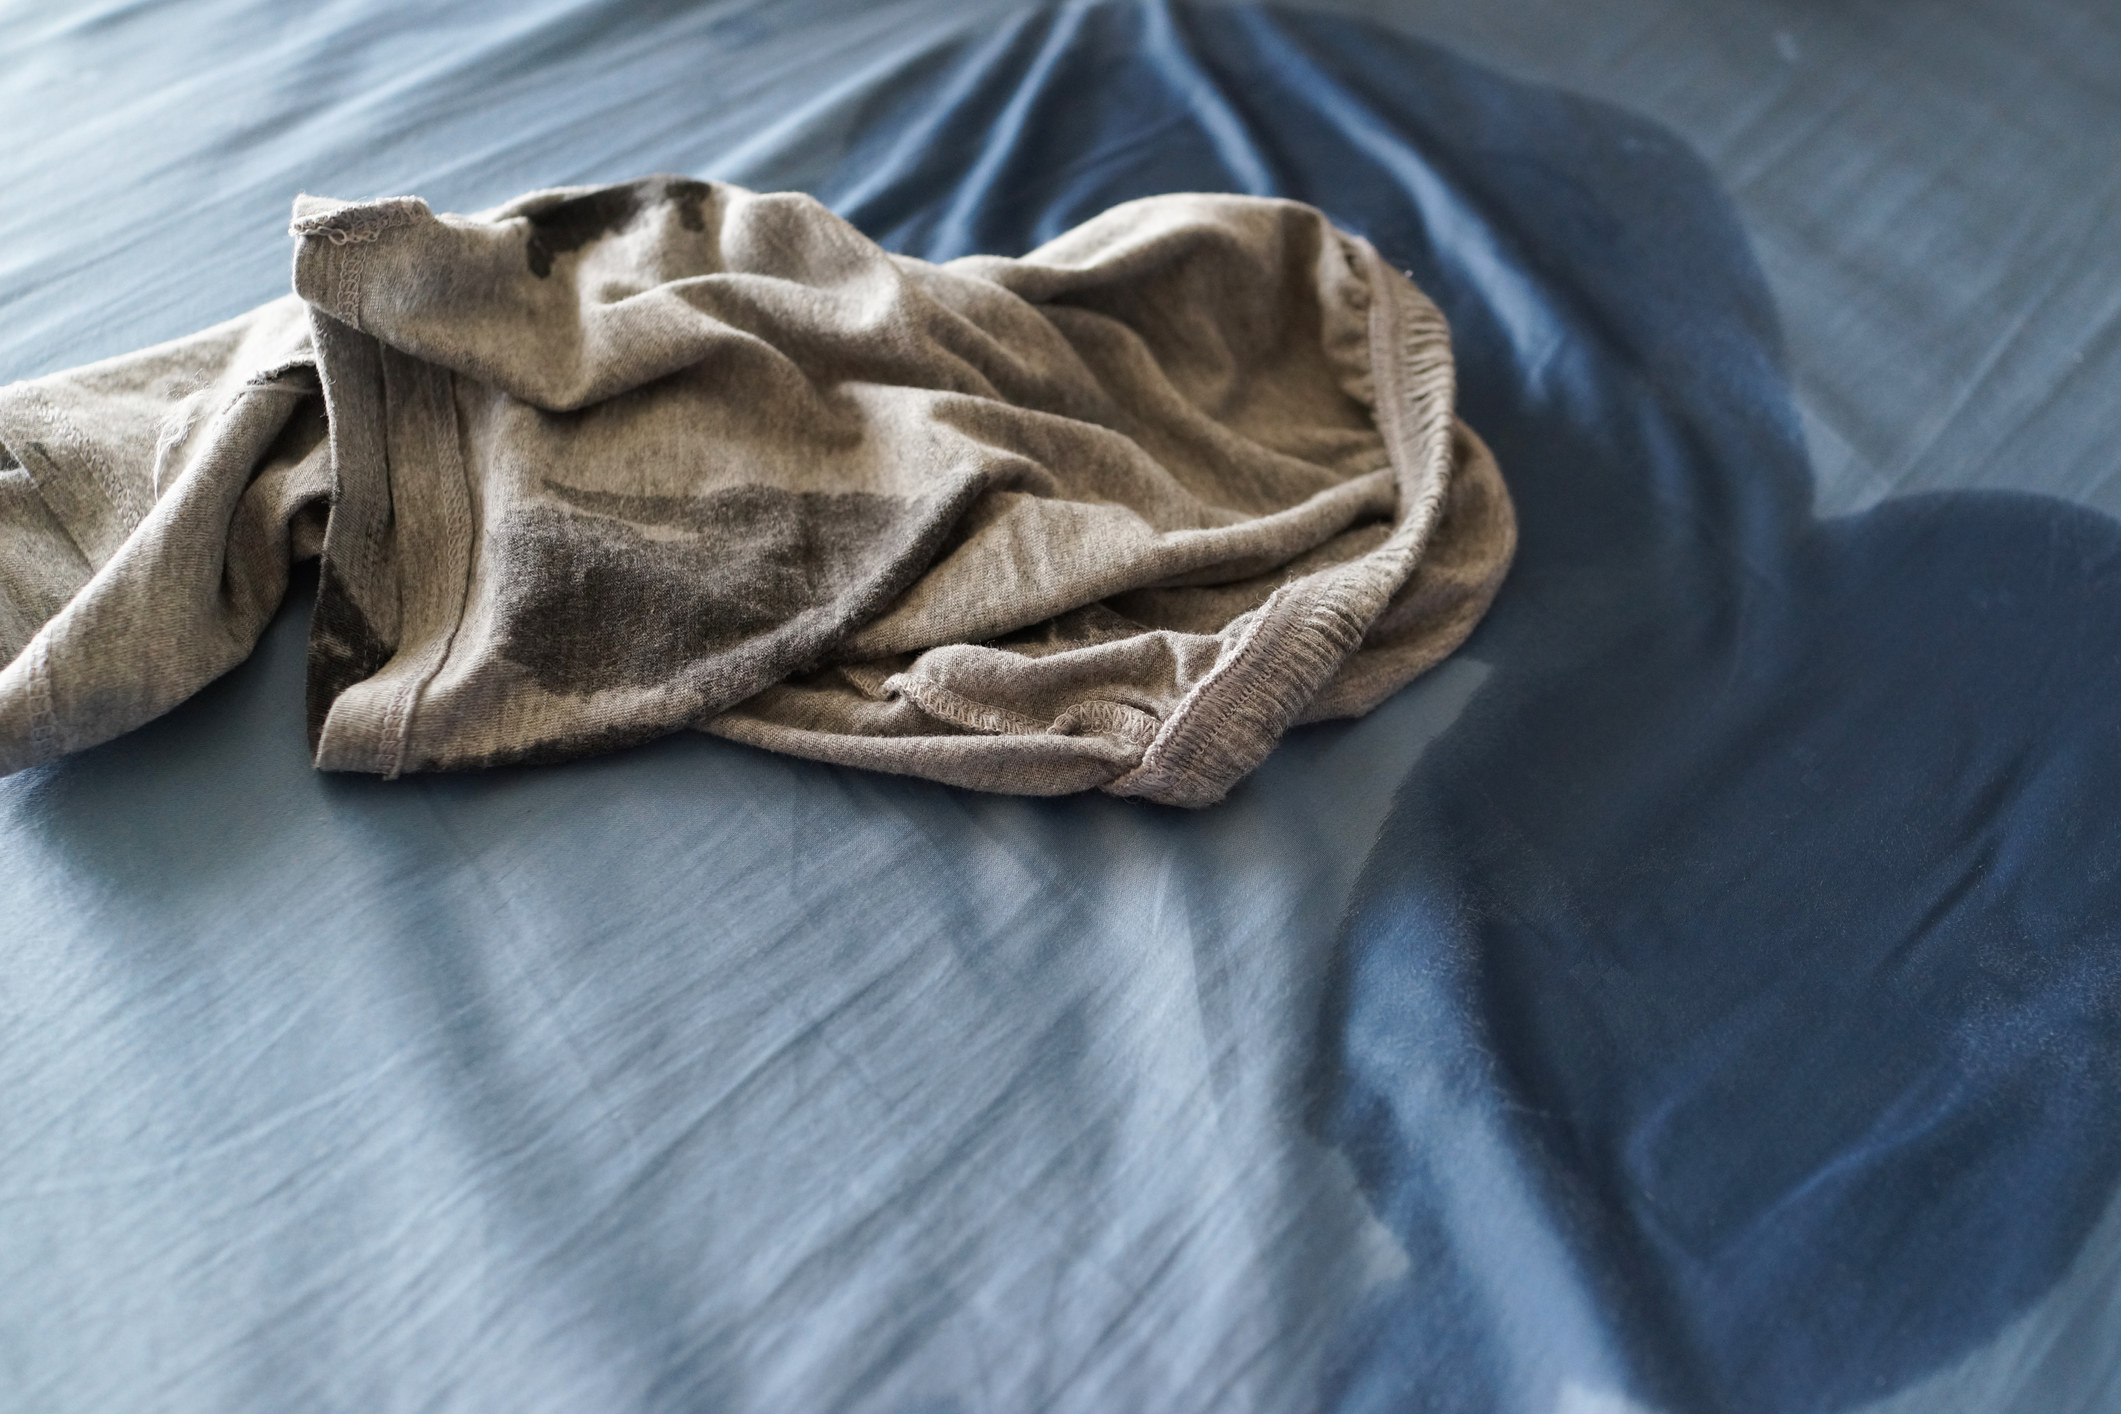 Bed sheets that are absolutely soaked